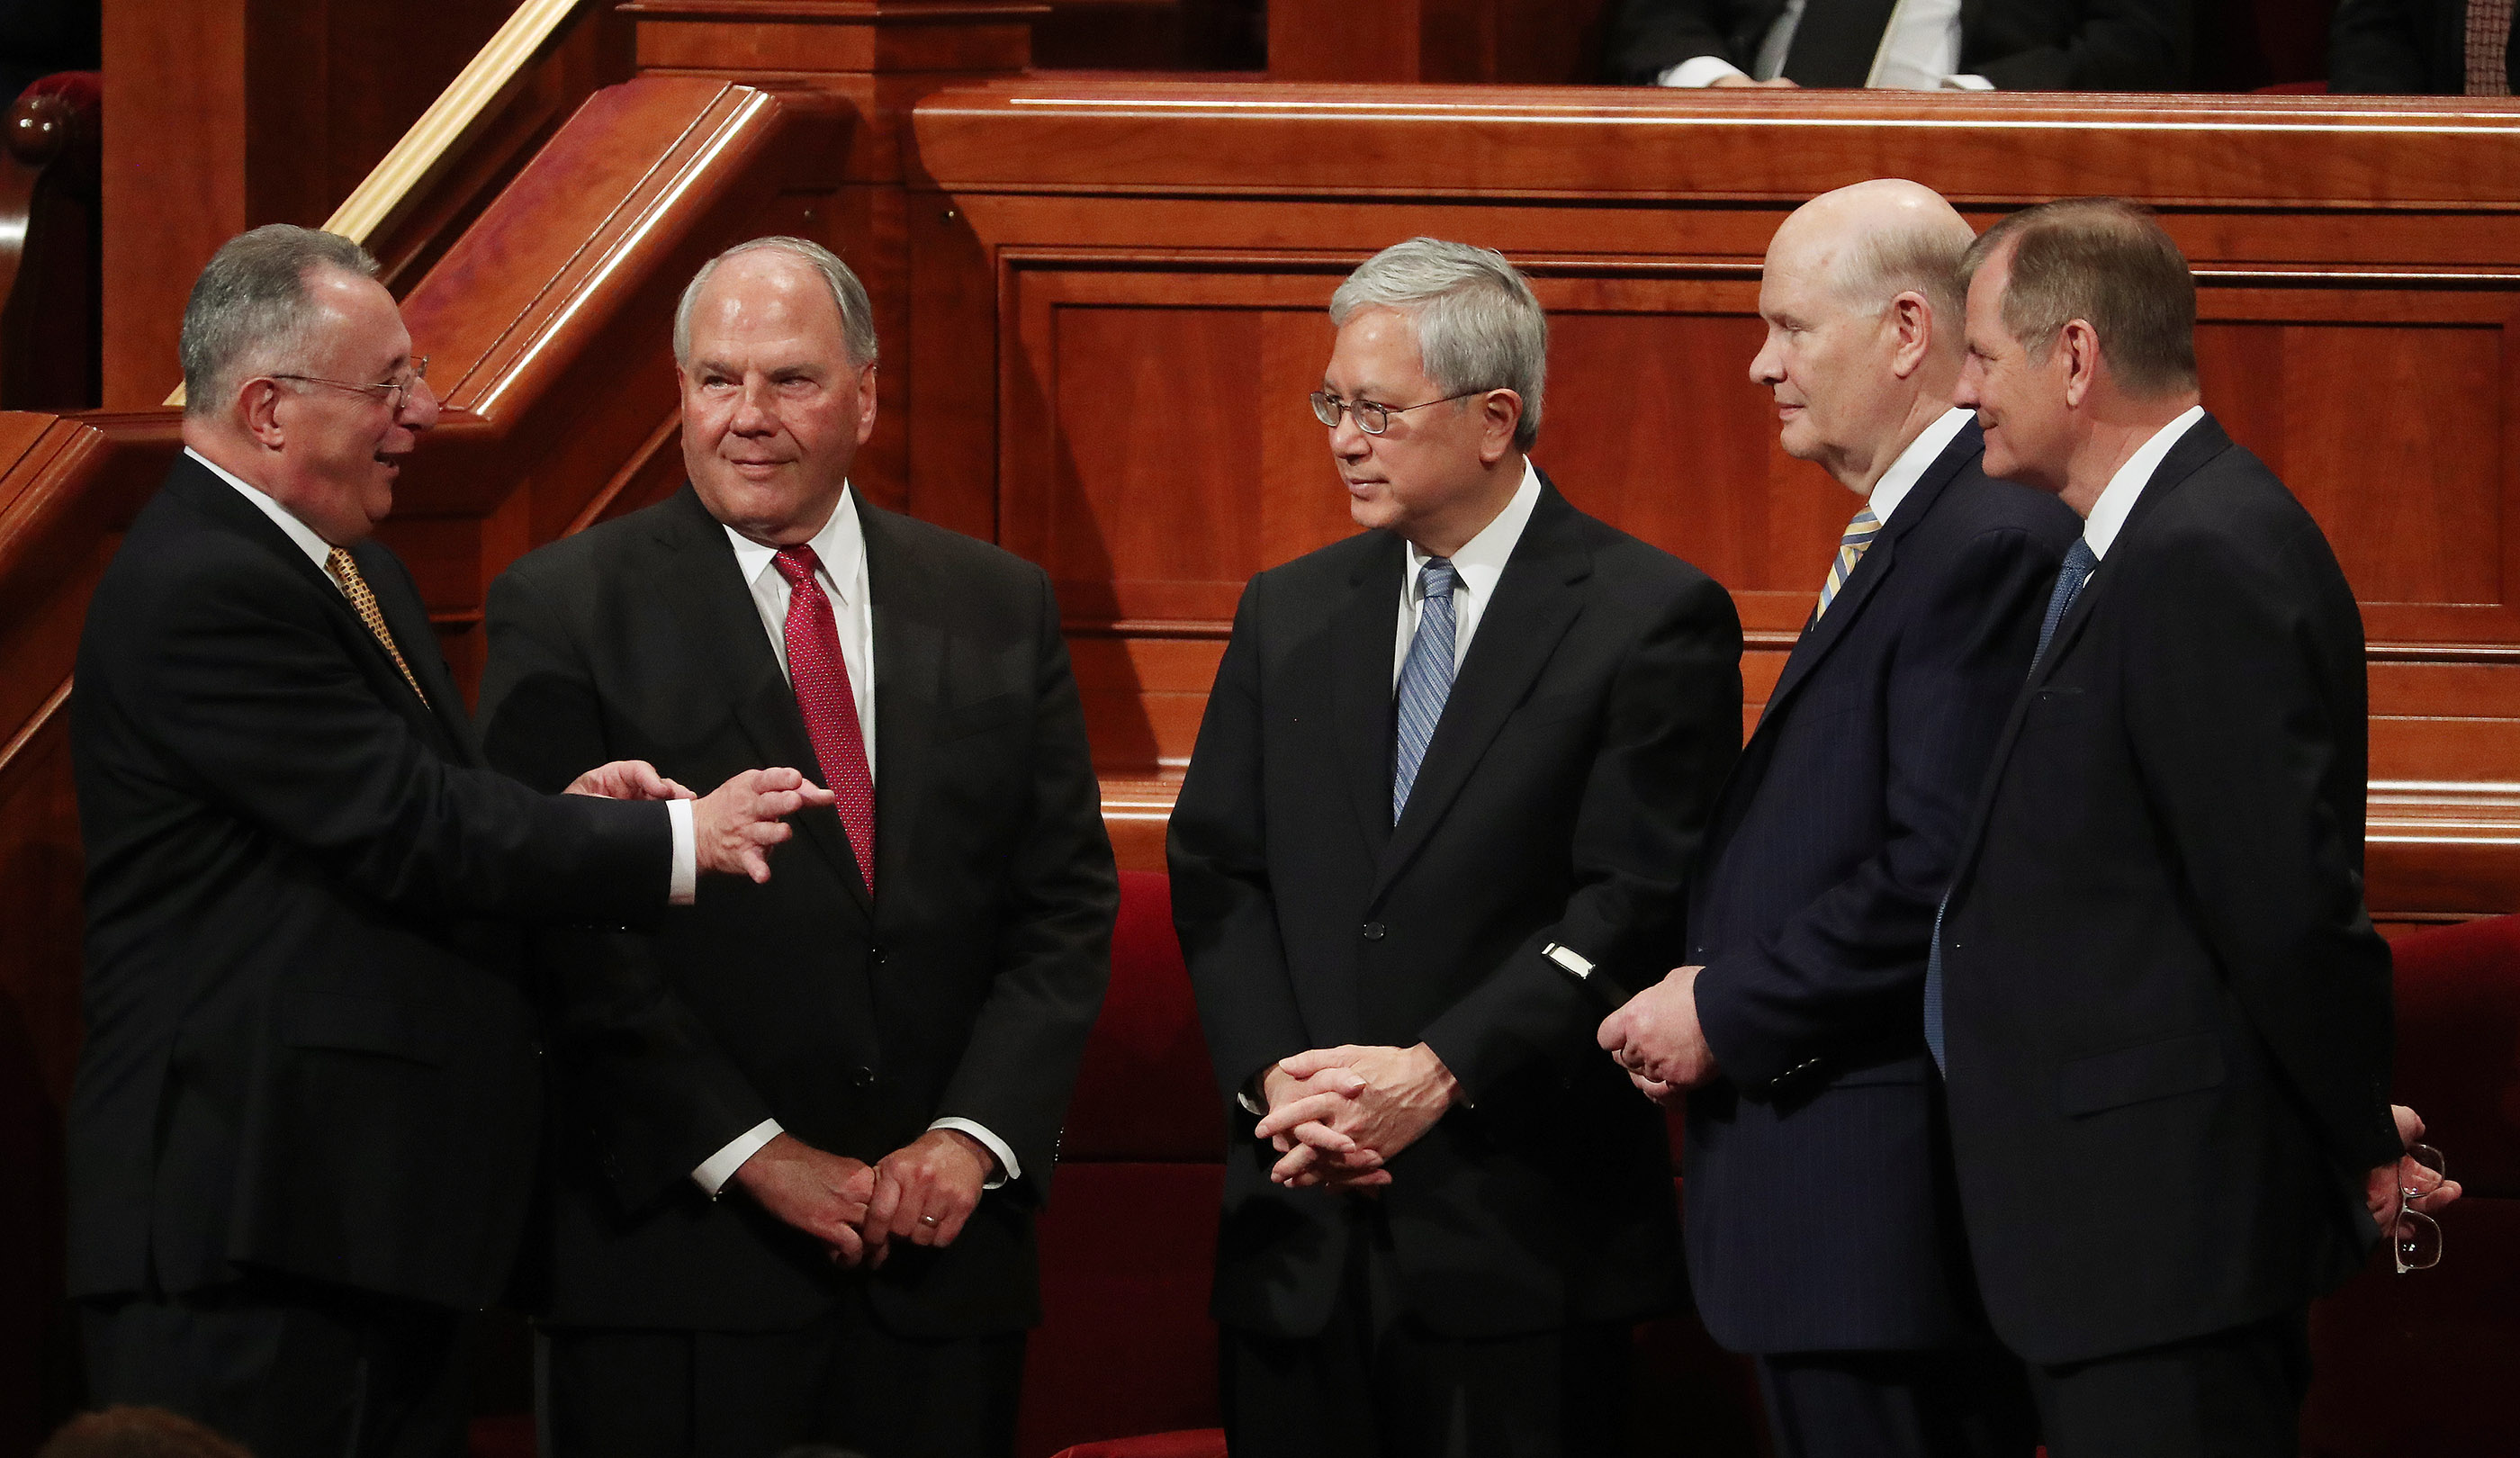 Elder Ulisses Soares, Elder Ronald A. Rasband, Elder Gerrit W. Gong, Elder Dale G. Renlund and Elder Gary E. Stevenson of The Church of Jesus Christ of Latter-day Saints' Quorum of the Twelve Apostles speak prior to the 189th Annual General Conference of The Church of Jesus Christ of Latter-day Saints in Salt Lake City on Saturday, April 6, 2019.